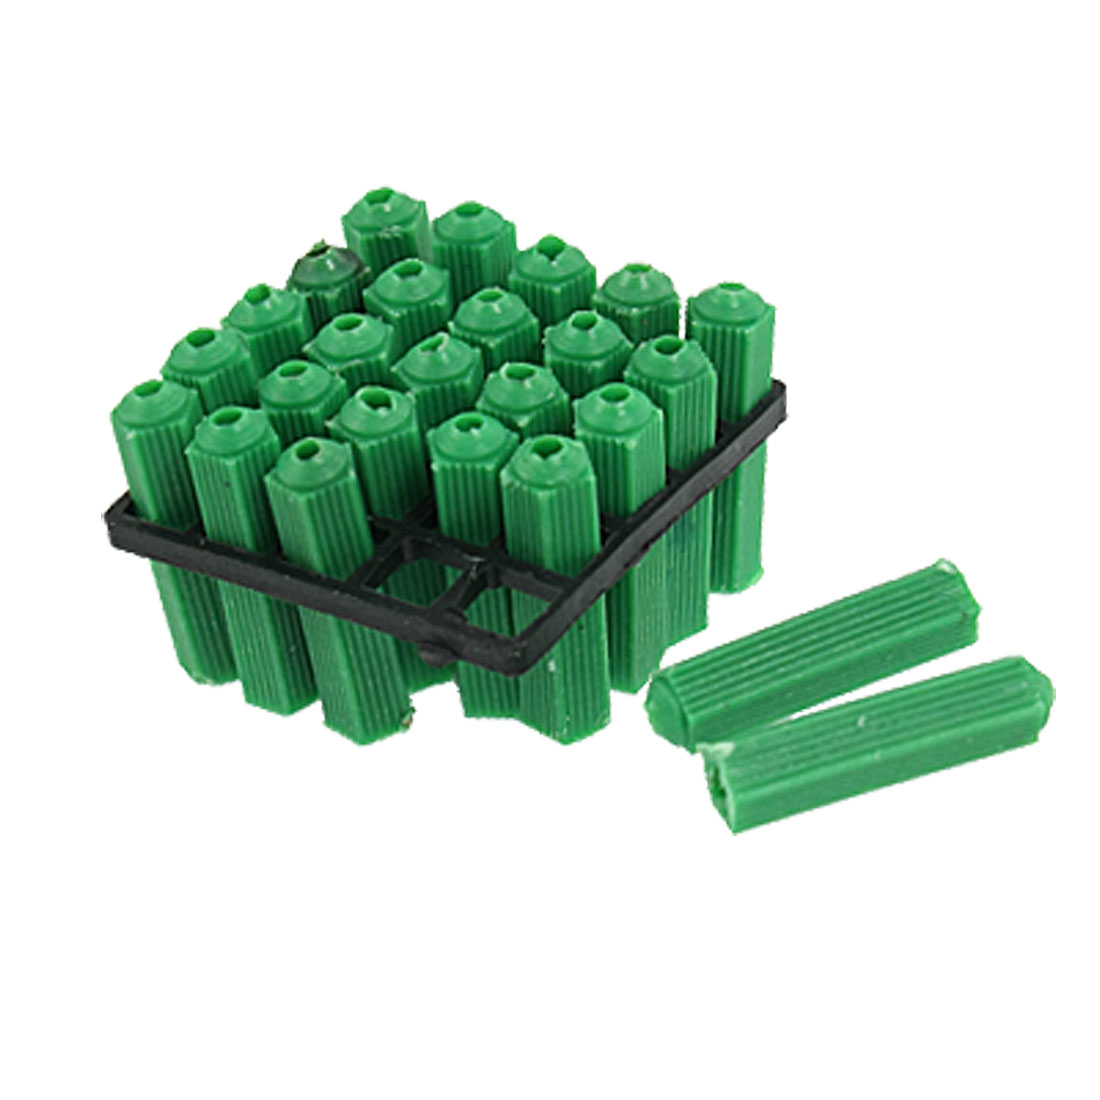 200 Pcs Masonry Fixing Green 6mm Nonslip Plastic Wall Plugs